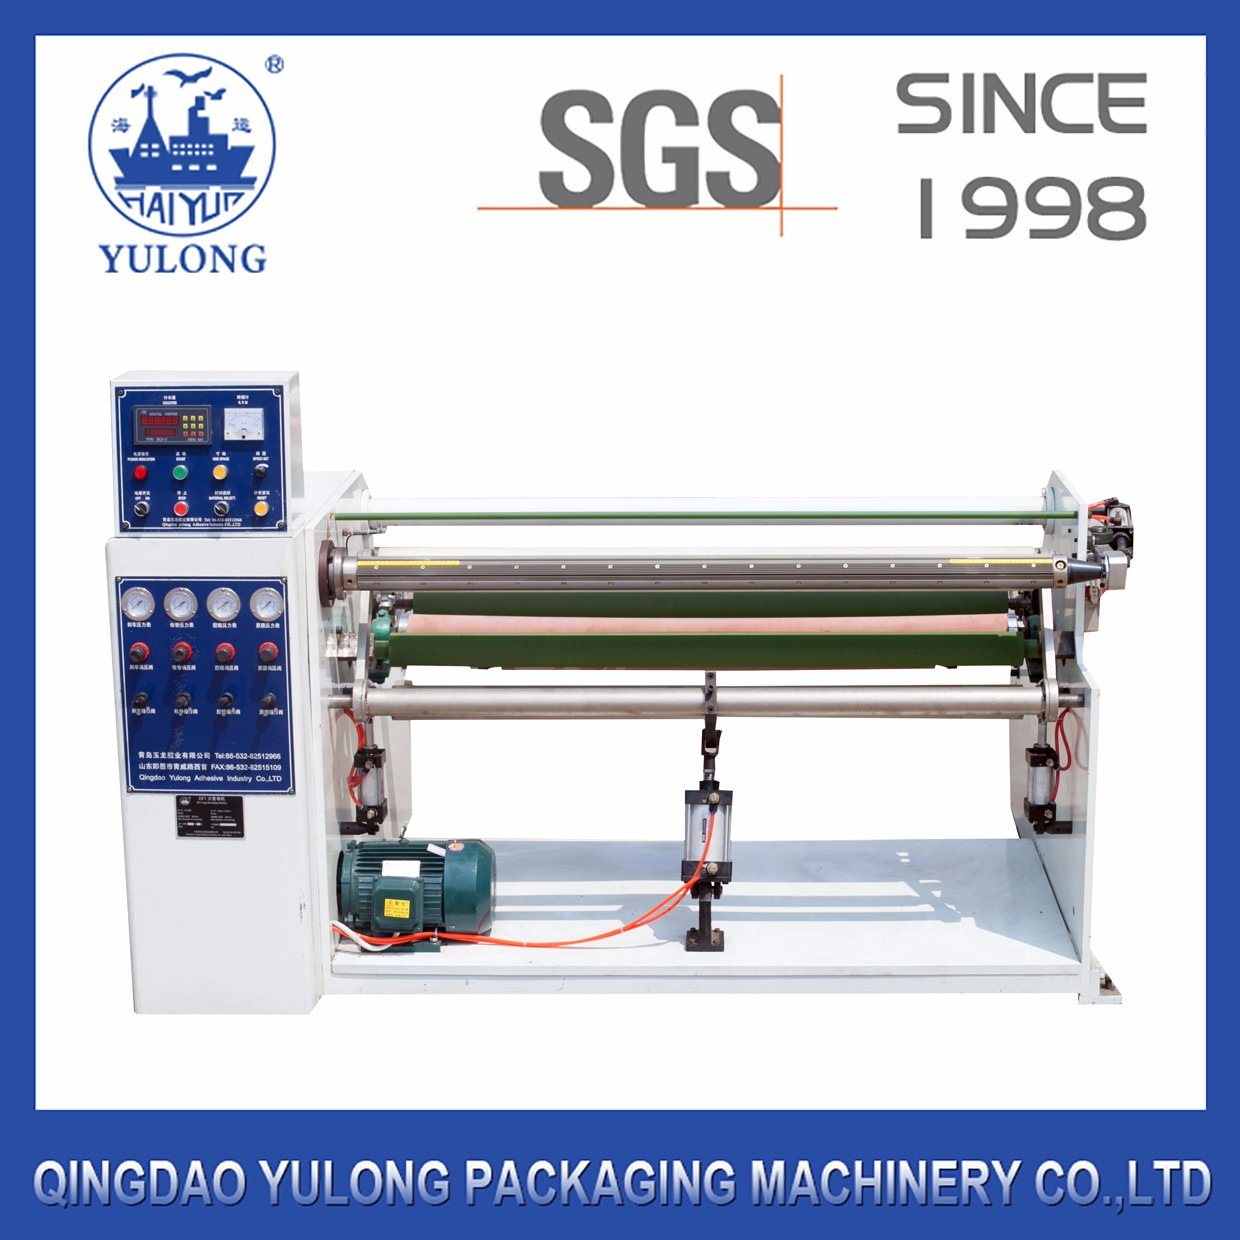 Yl-102A Single Shaft Tape Rewinding Machine